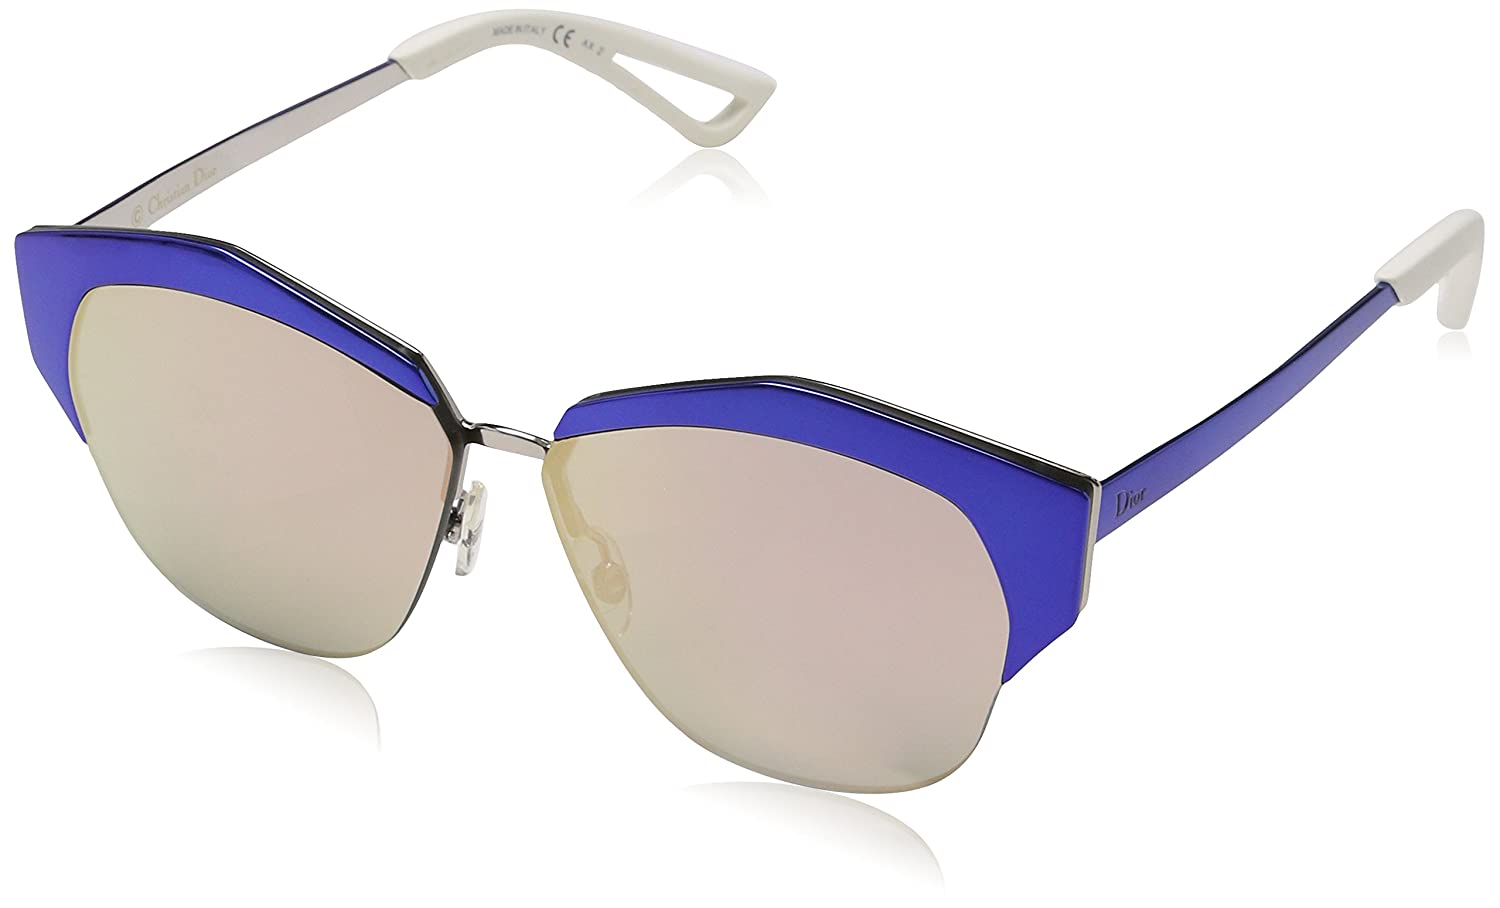 454bb7c463f Amazon.com  Christian Dior Mirrored S Sunglasses Violet Rose Gold   Red  Mirror  Clothing